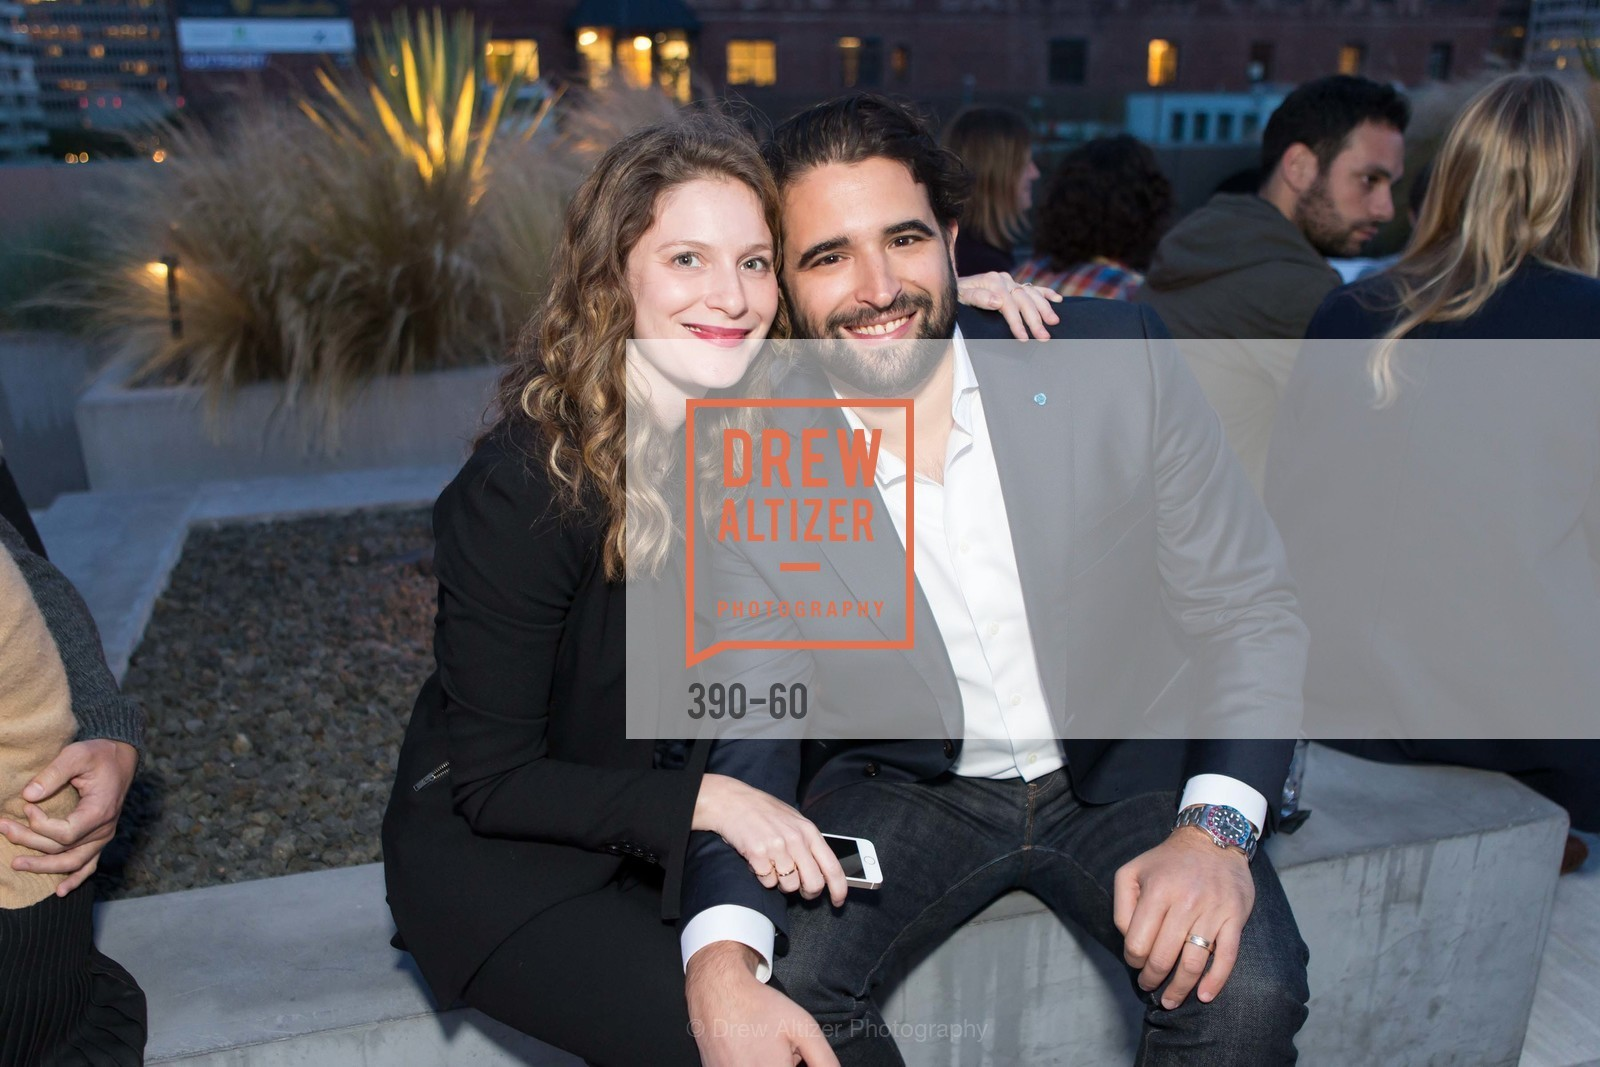 Emily Blink, Josh Blink, MR PORTER Celebrate The San Francisco Issue of The Journal, The Battery Rooftop - The Battery SF, April 23rd, 2015,Drew Altizer, Drew Altizer Photography, full-service agency, private events, San Francisco photographer, photographer california